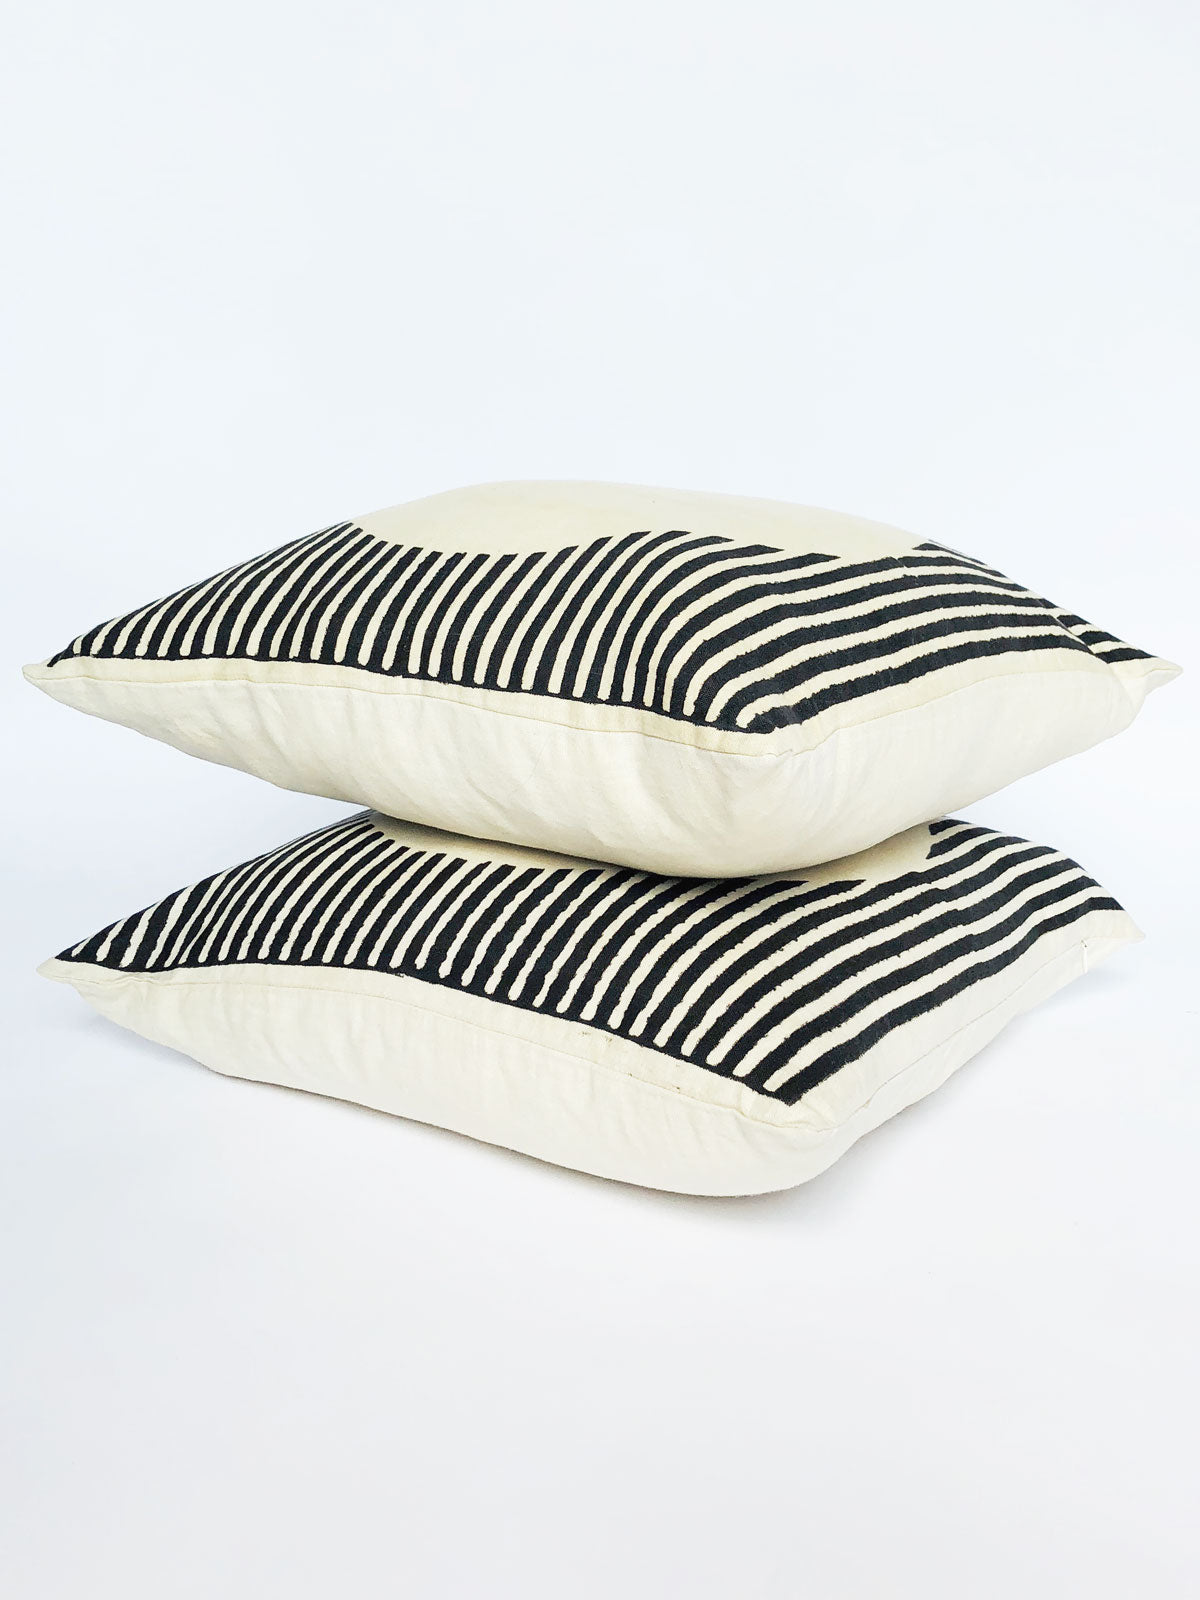 black and white striped geometric decorative throw pillow cover hand block printed with natural black dye.